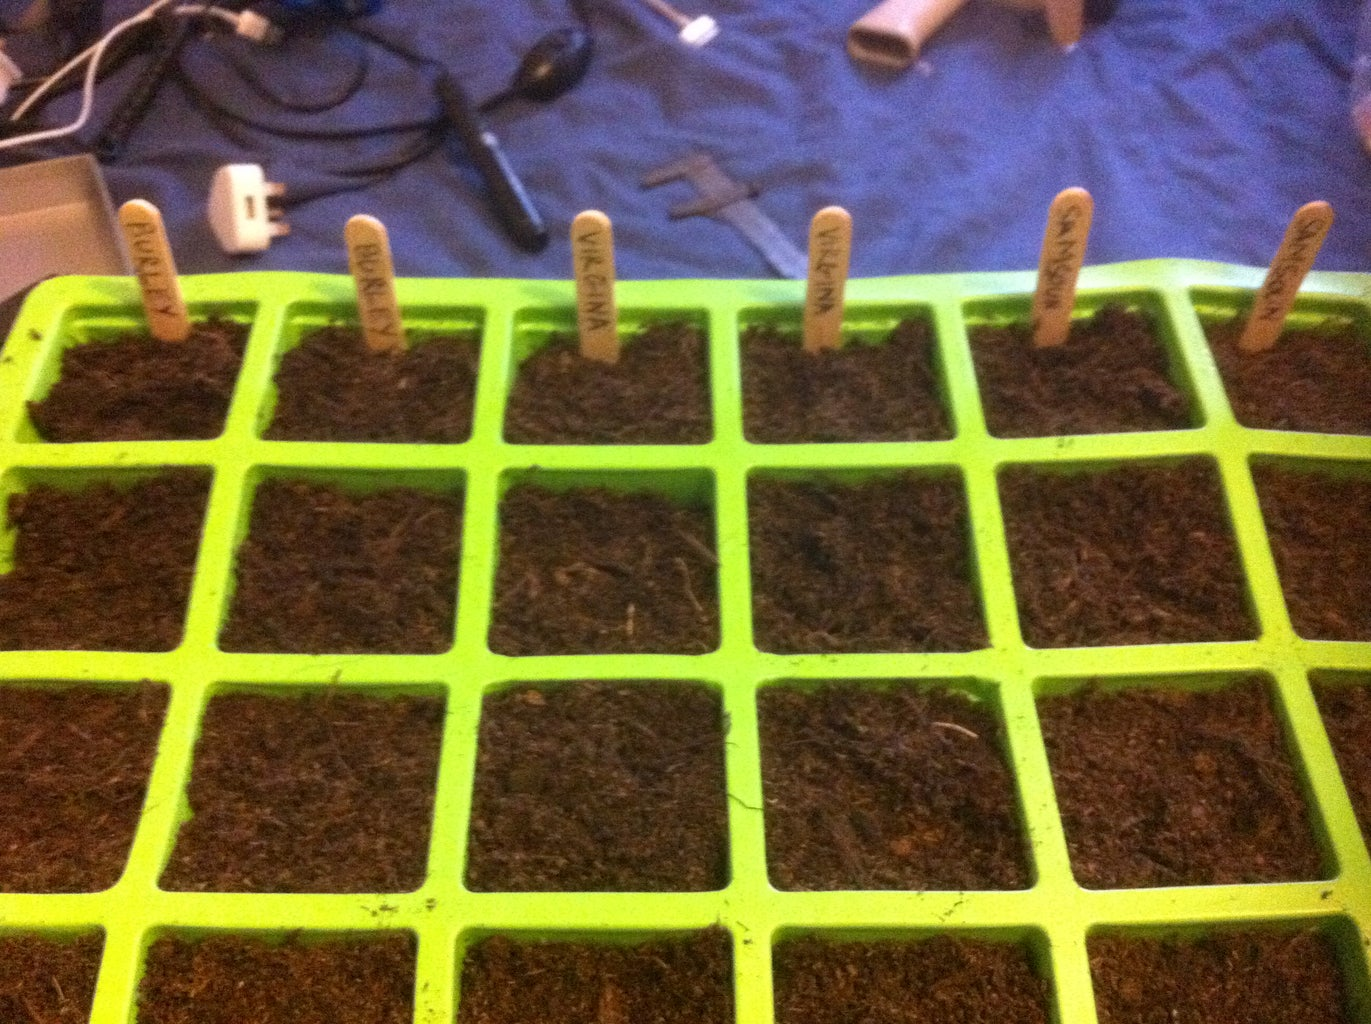 Germinating the Seeds